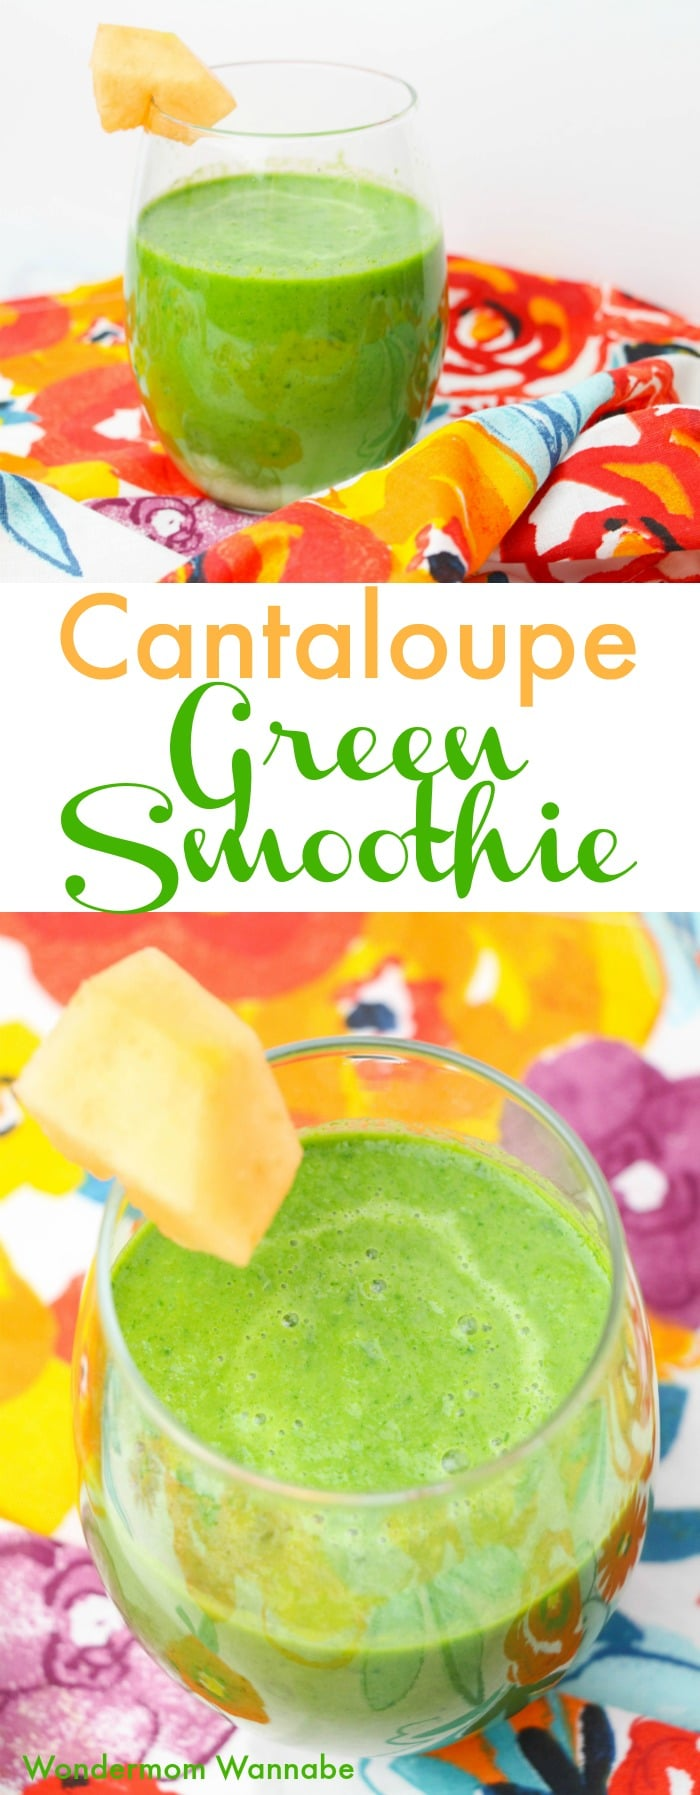 A fun and unique smoothie recipe with just four ingredients! This cantaloupe green smoothie is chock full of nutrition and so easy to make.